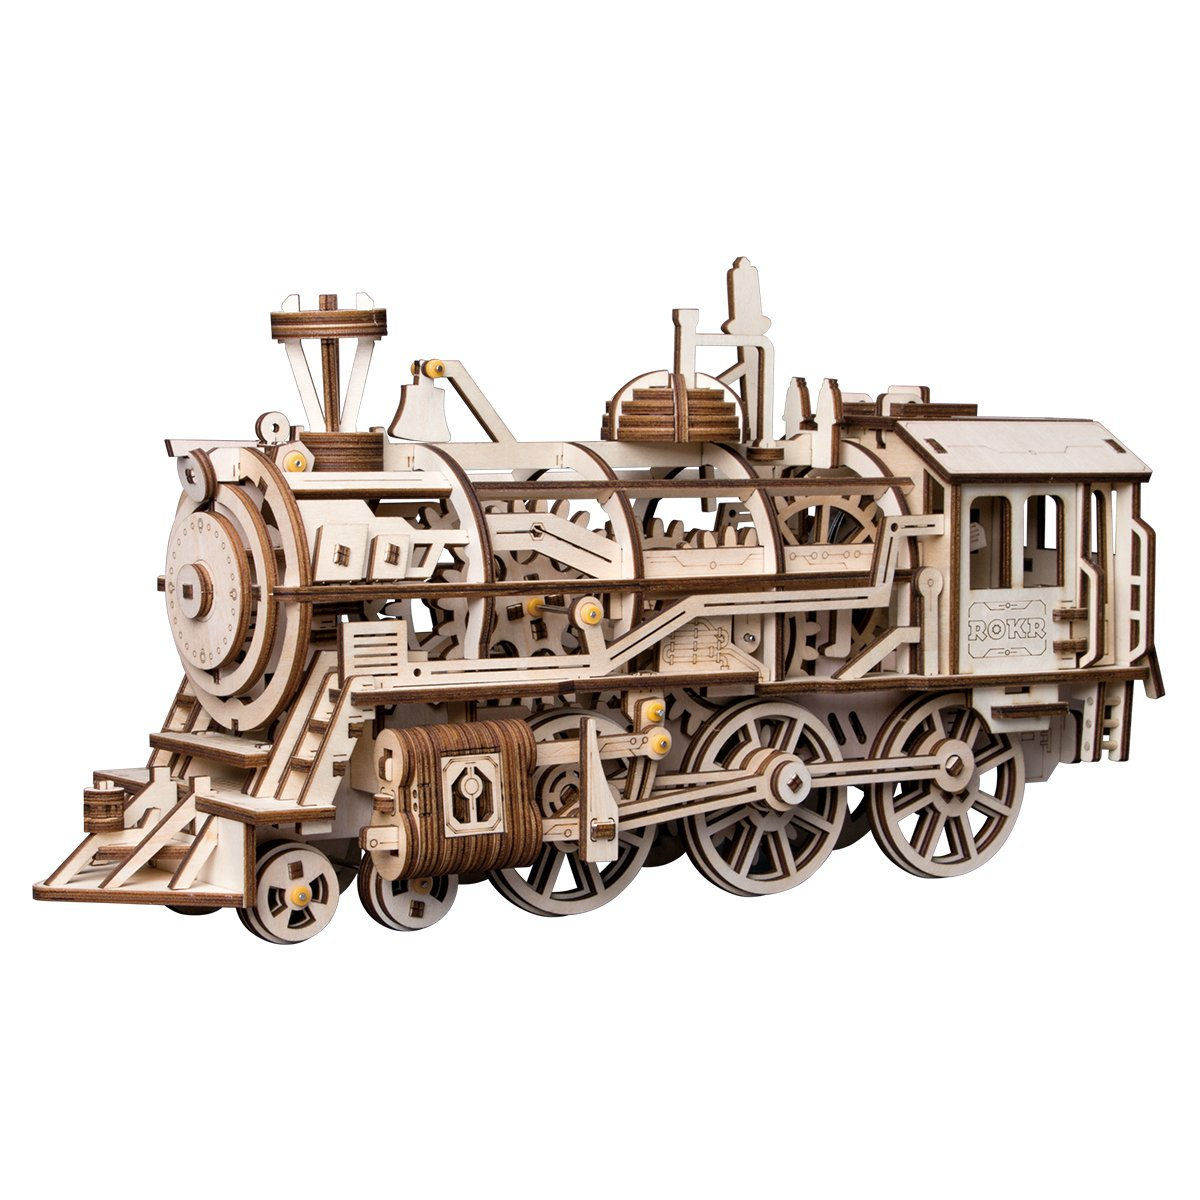 ROBOTIME 3D Assembly Wooden Puzzle Laser-Cut Locomotive Kit Mechanical Gears Toy Brain Teaser Games Best Birthday Gifts for Engineer Husband & Boyfriend & Teen Boys & Adults by ROBOTIME